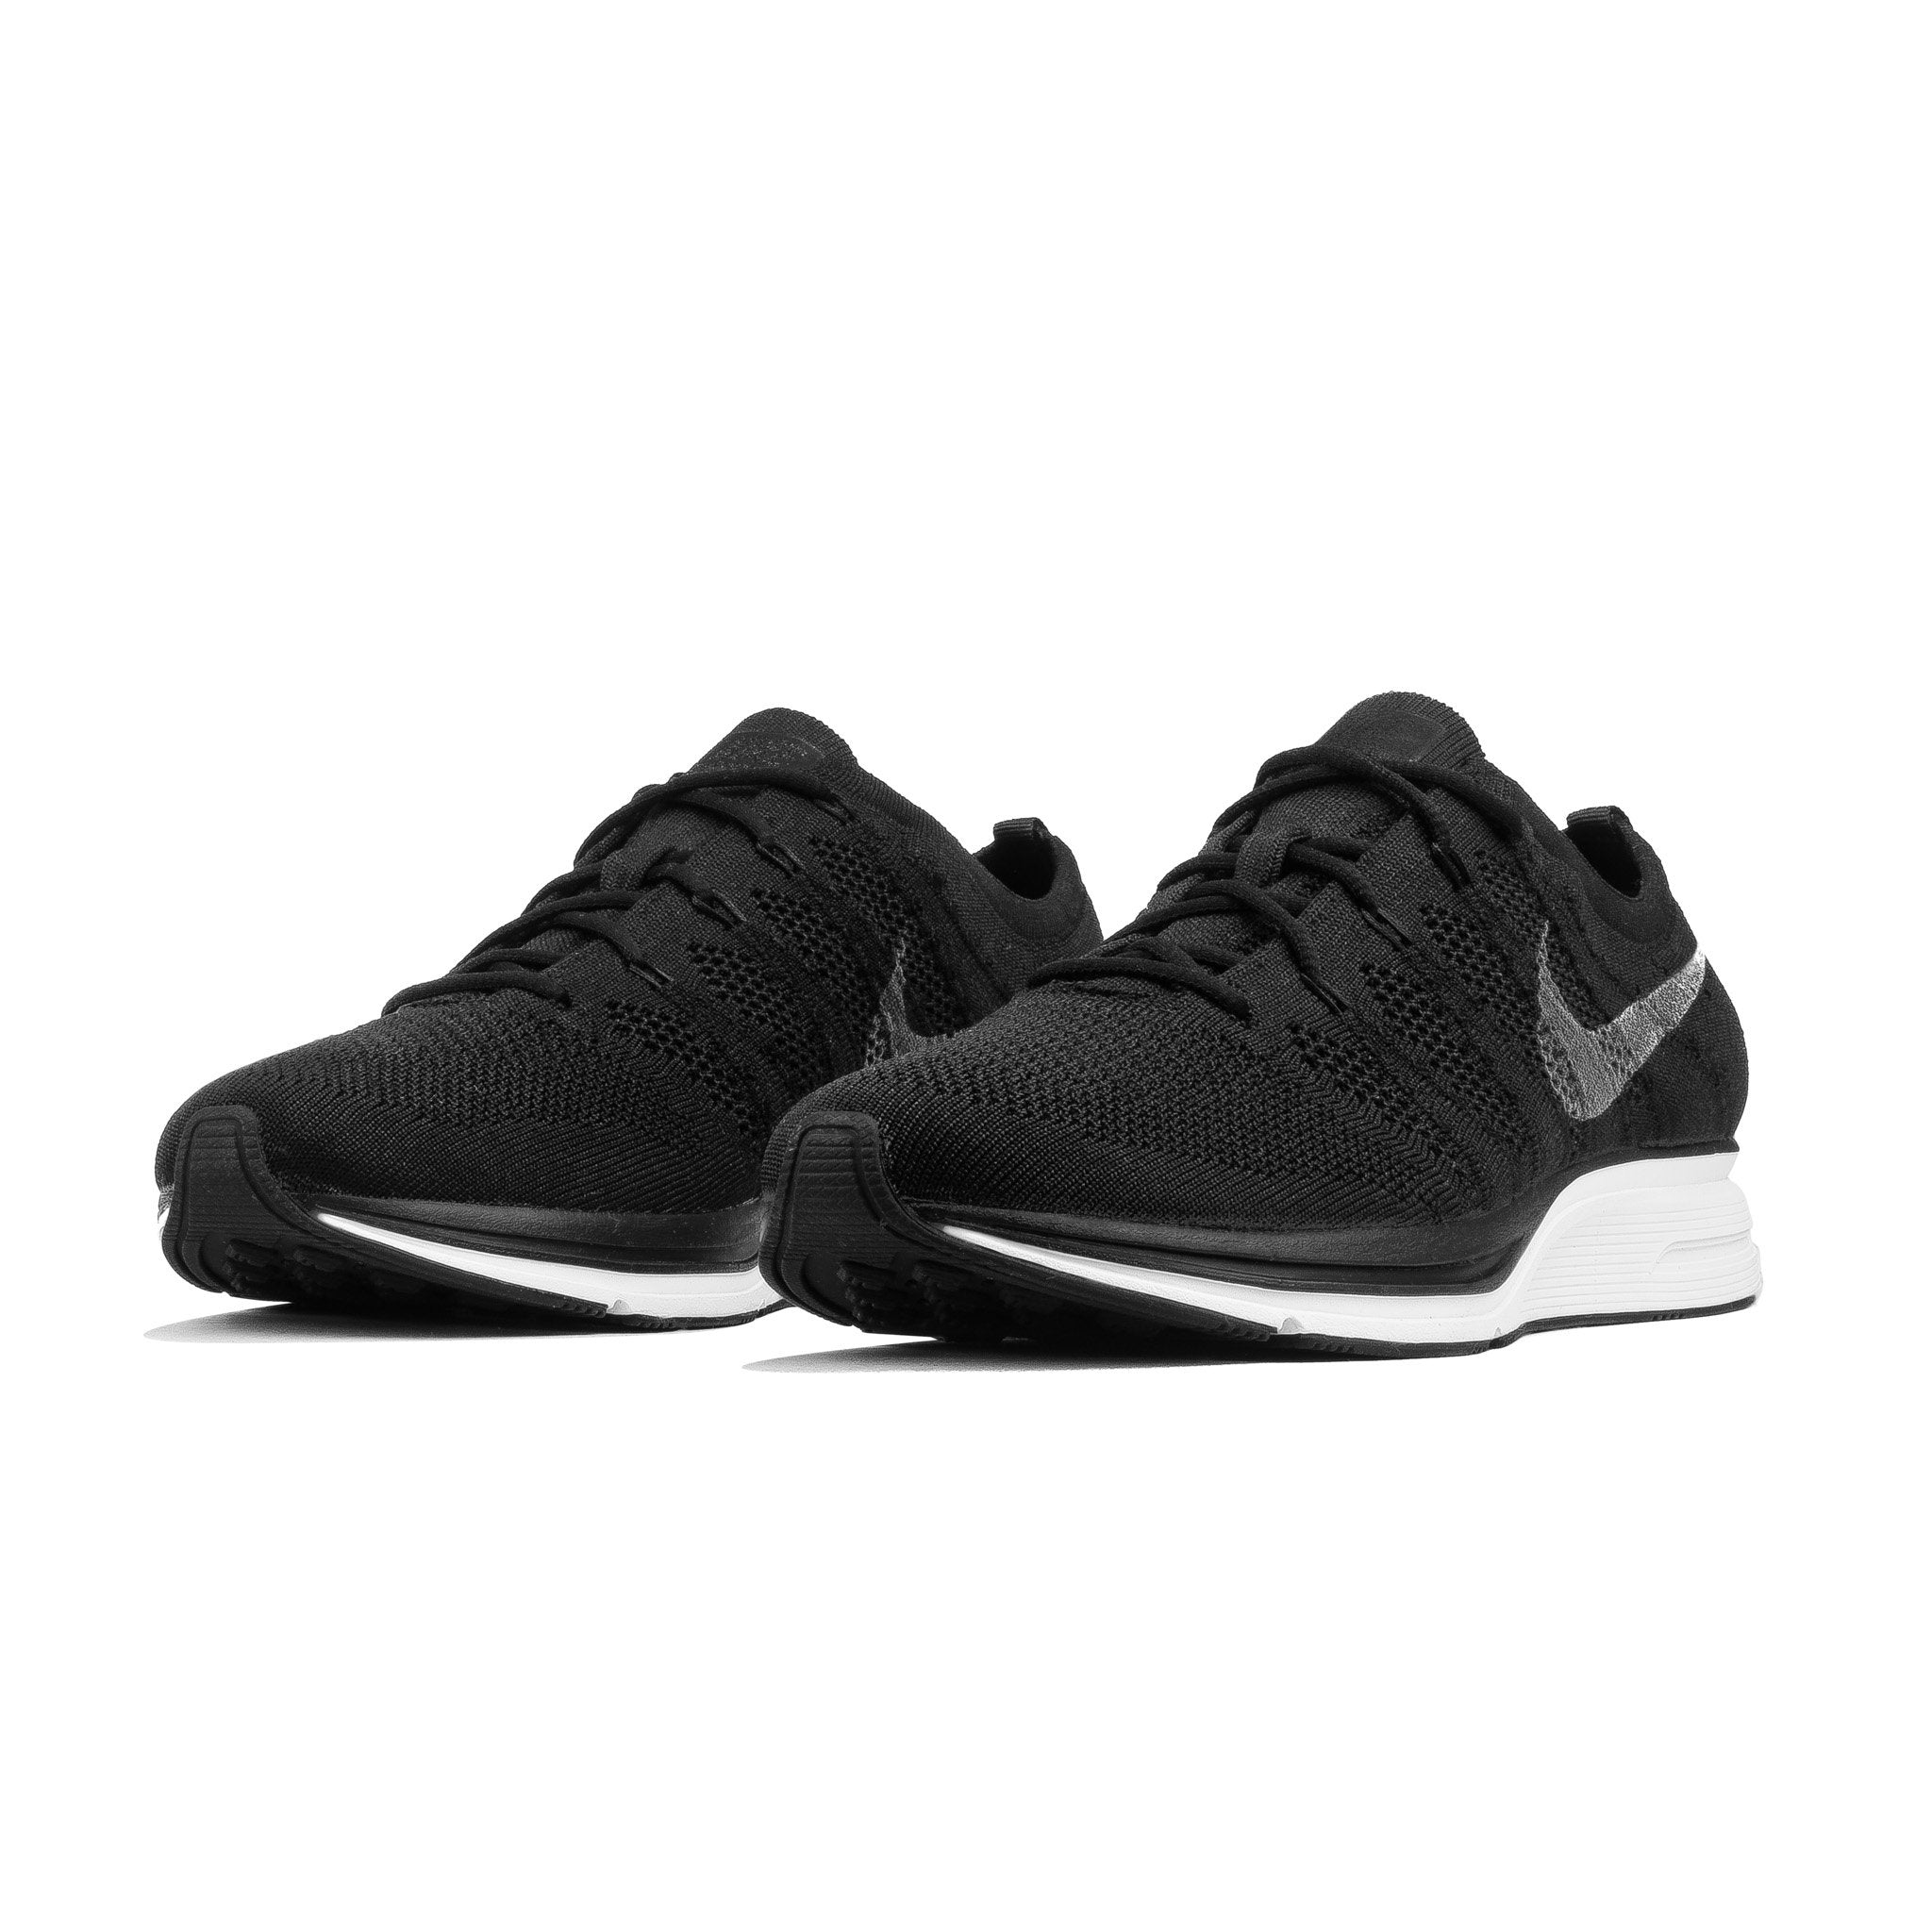 9ac2191baec1 coupon for nike flyknit trainer technology for sale 37175 8f13b